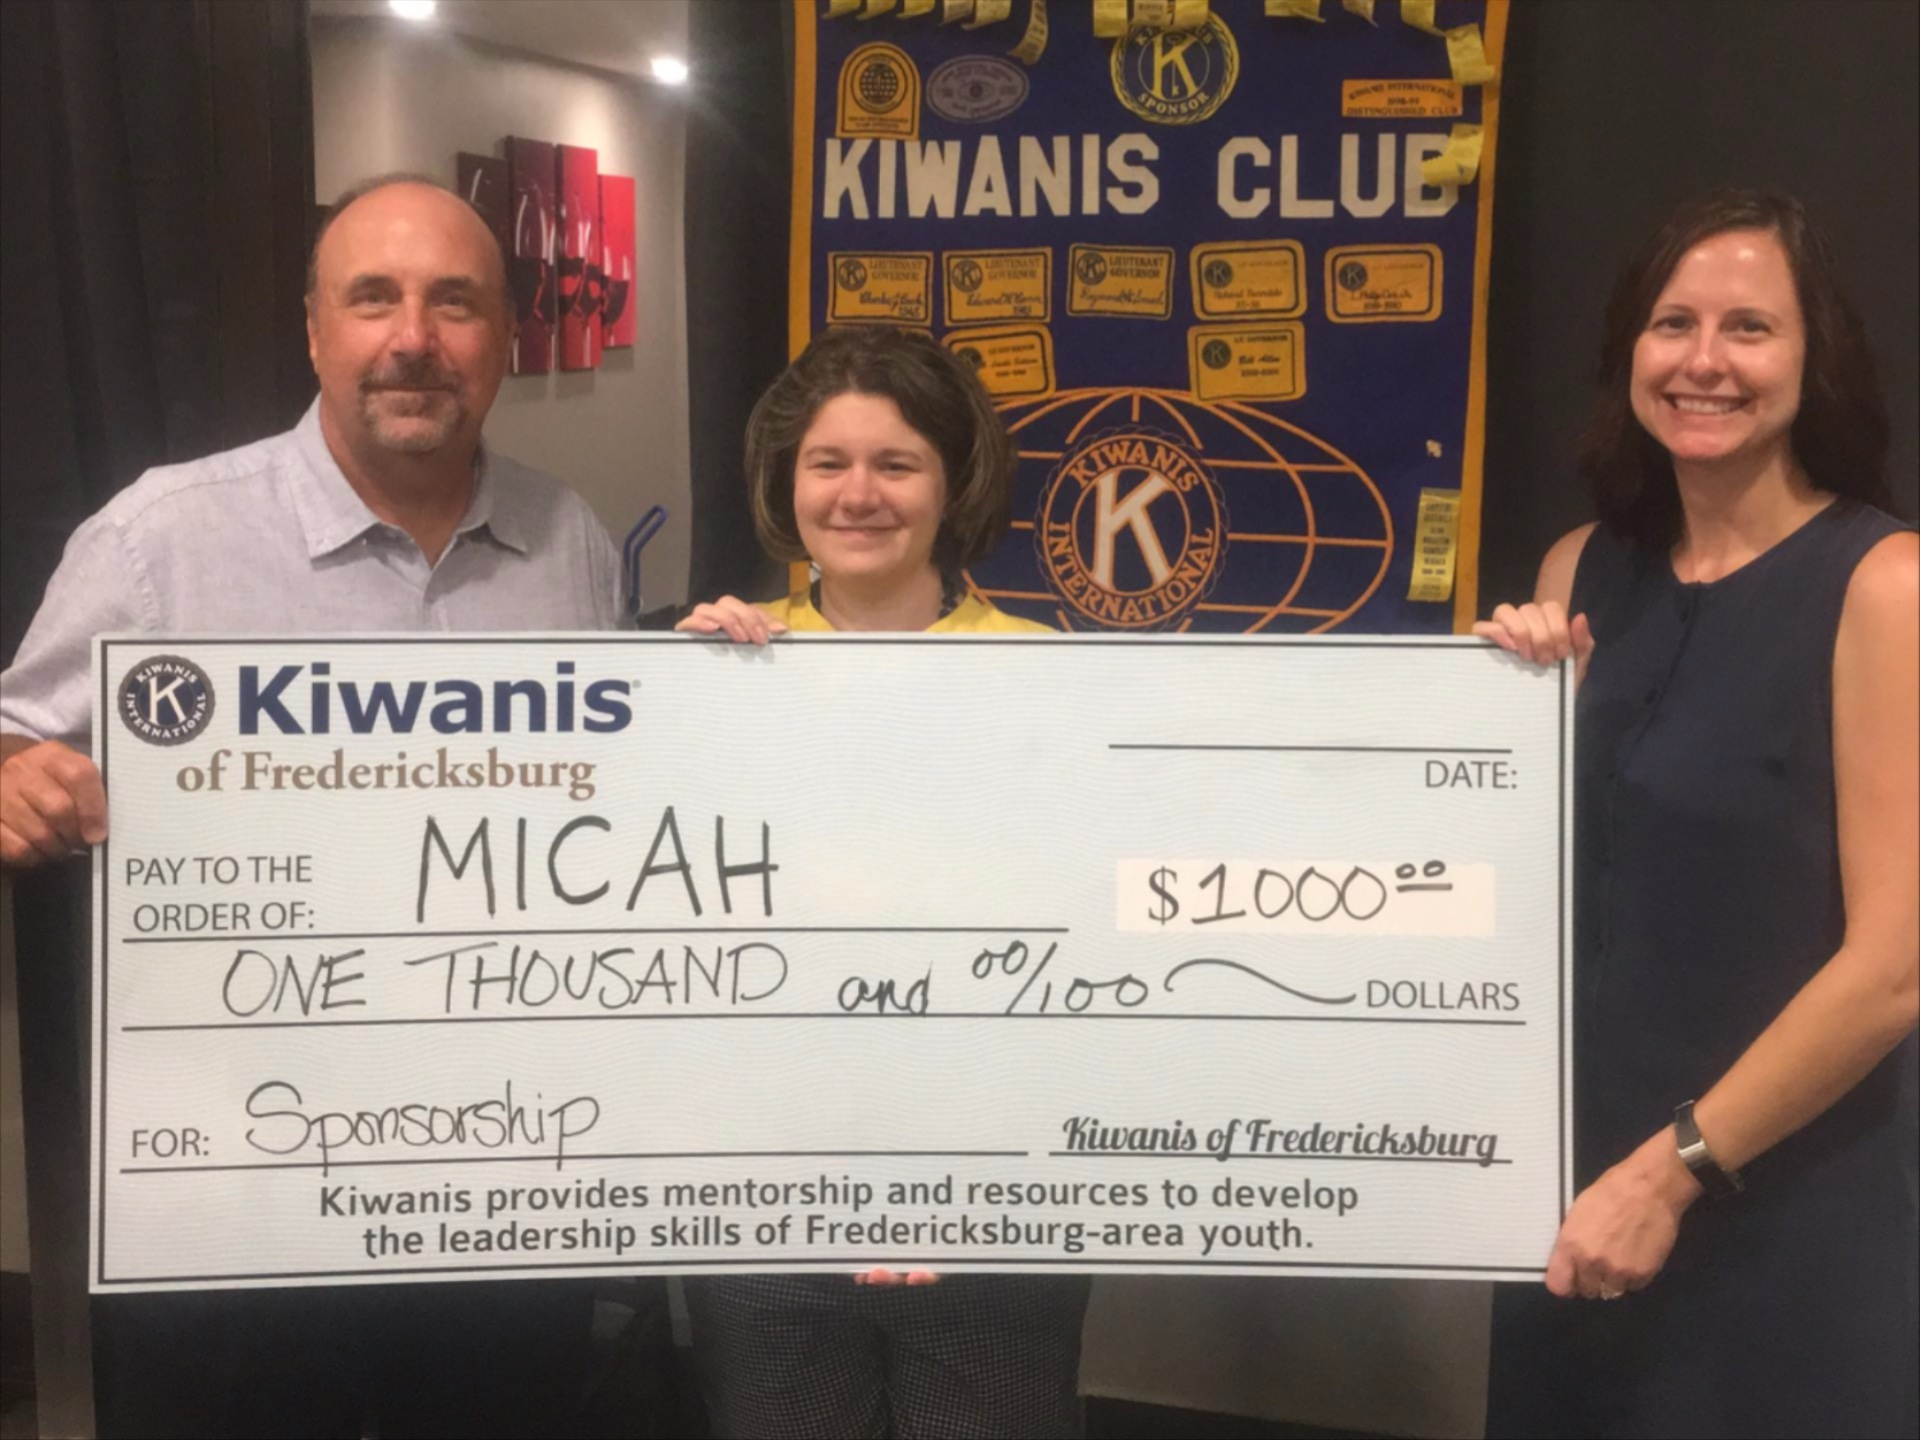 Kiwanis makes inaugural sponsorship to Micah program to assist the homeless